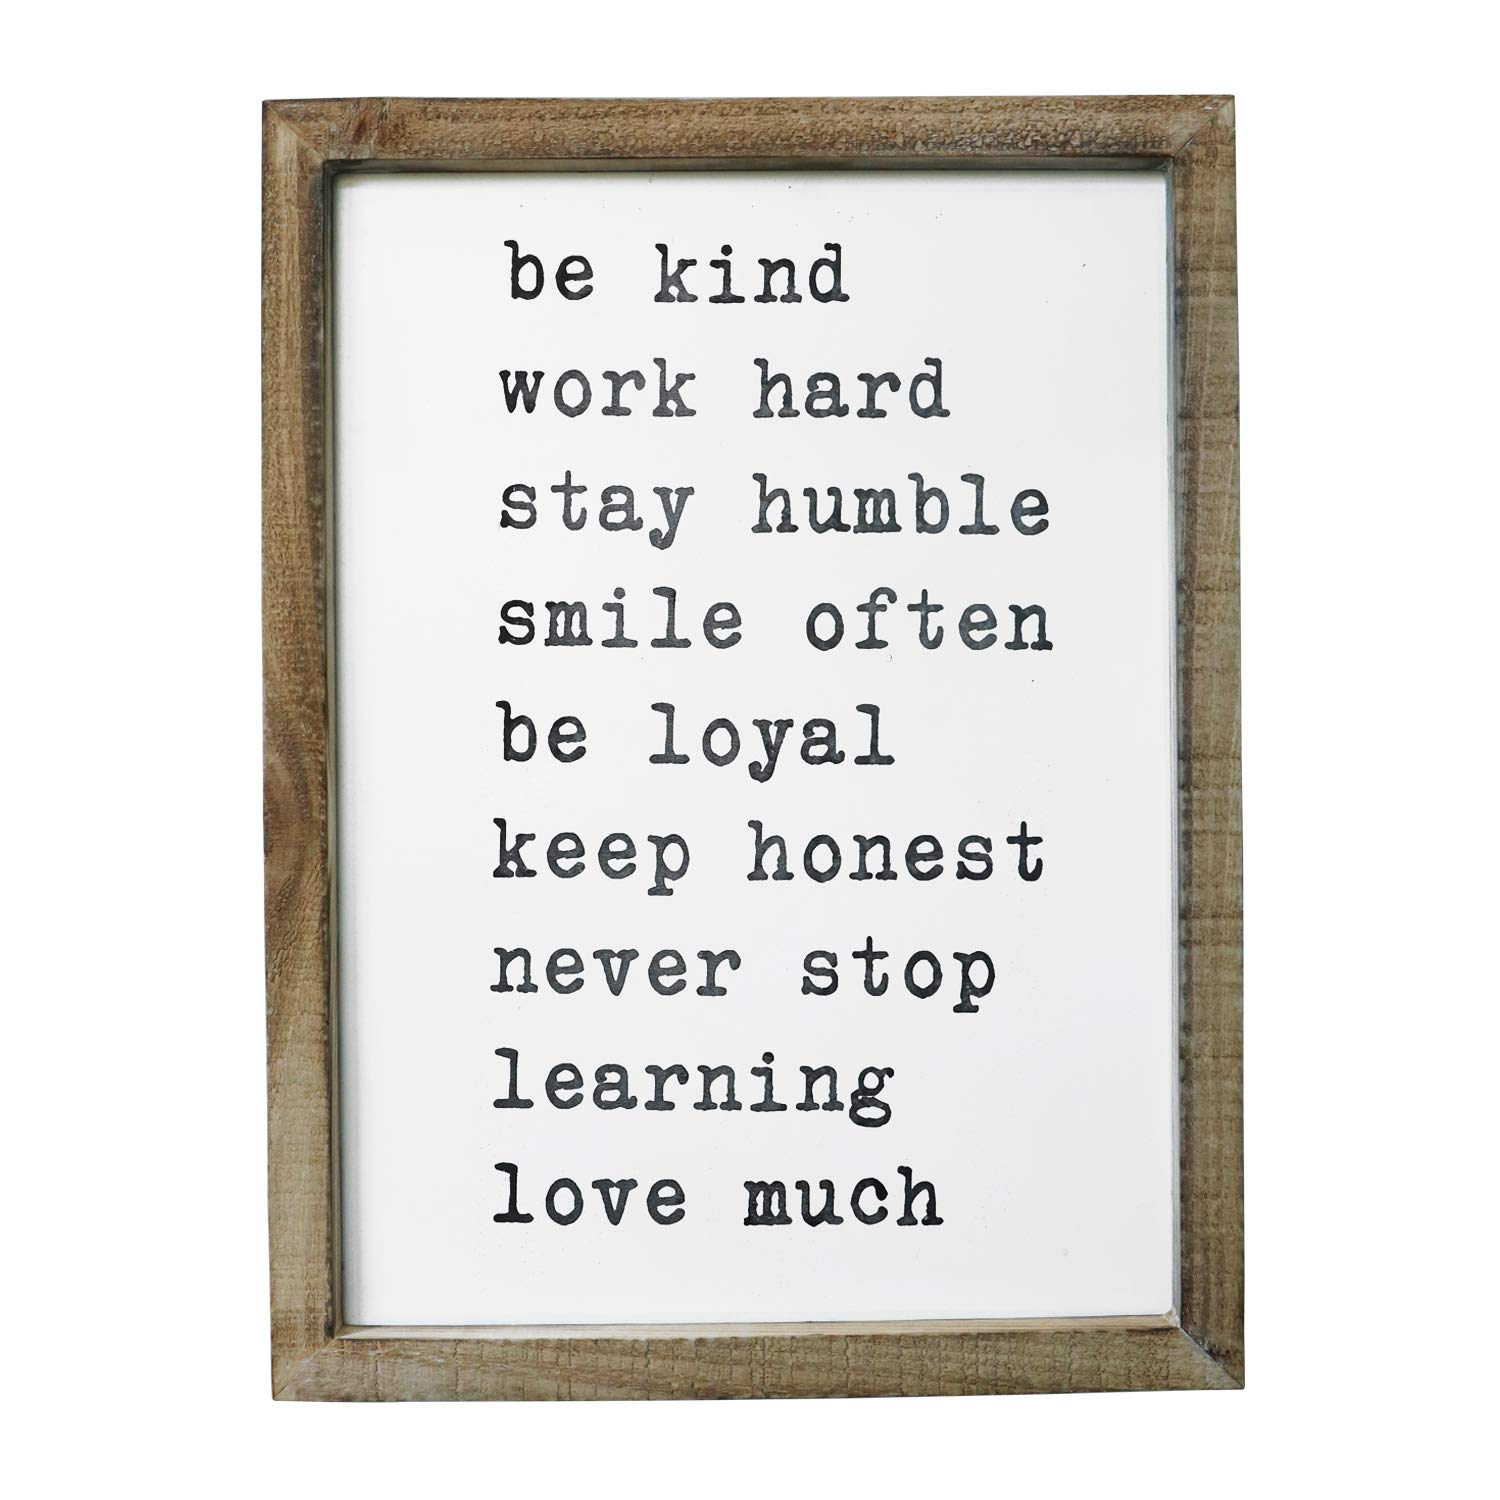 Sany Dayo Home Wall Decor Signs With Inspirational Sayings 16 X 12 Inches Rustic Wood Framed Modern Farmhouse Wall Hanging Art   Be Kind, Stay Humble, Never Stop by Sany Dayo Home